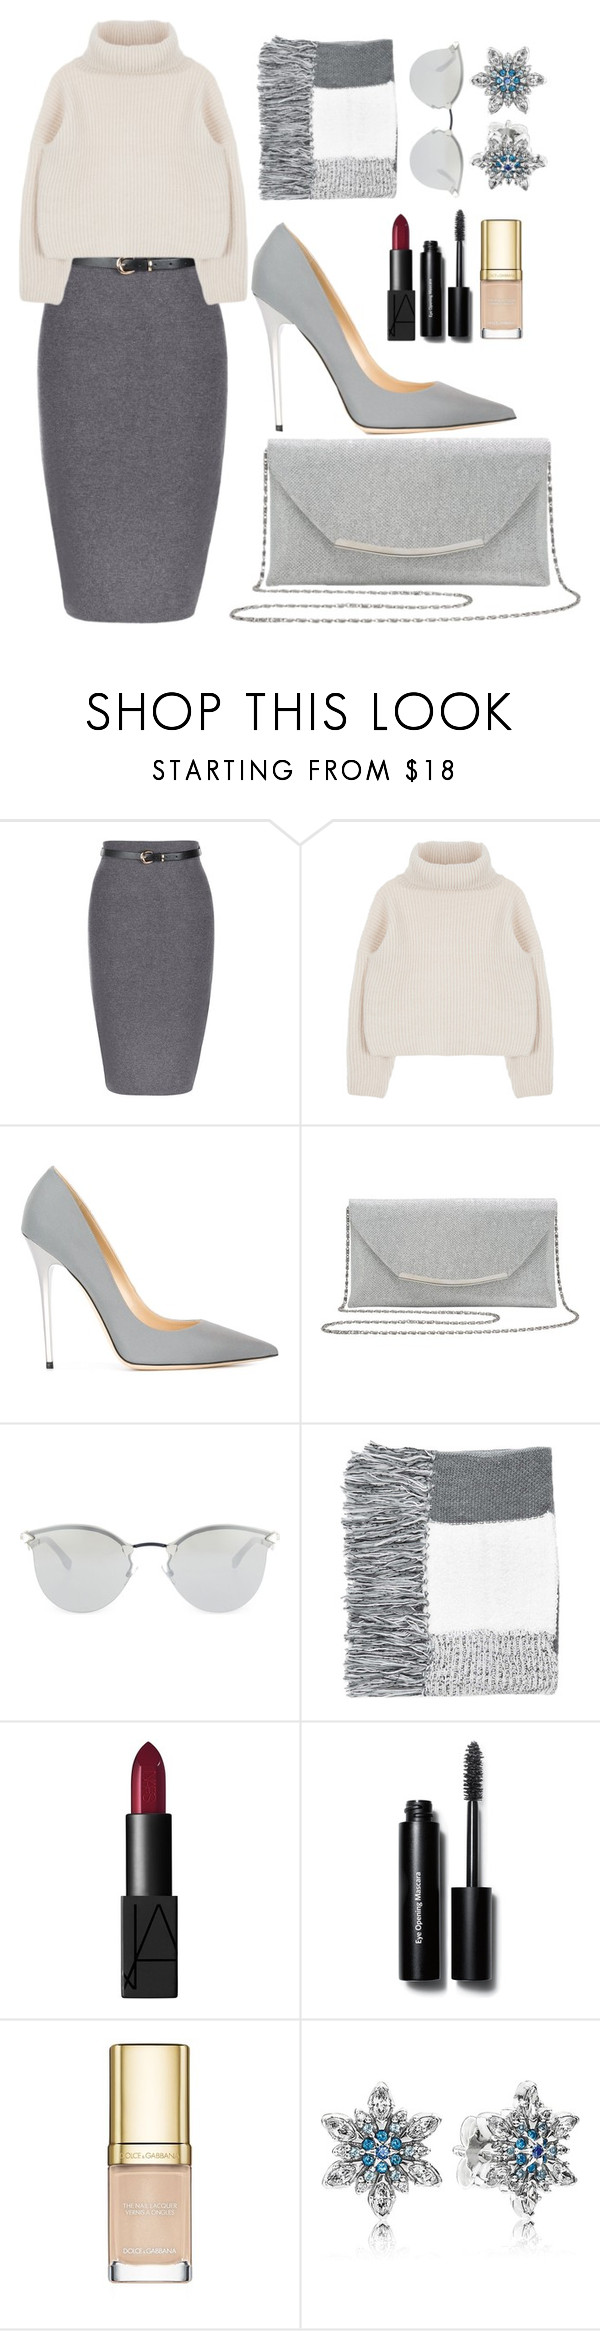 """It's Cold Outside"" by richiolle ❤ liked on Polyvore featuring Jimmy Choo, M&Co, Fendi, Topshop, NARS Cosmetics, Bobbi Brown Cosmetics, Dolce&Gabbana and Pandora"